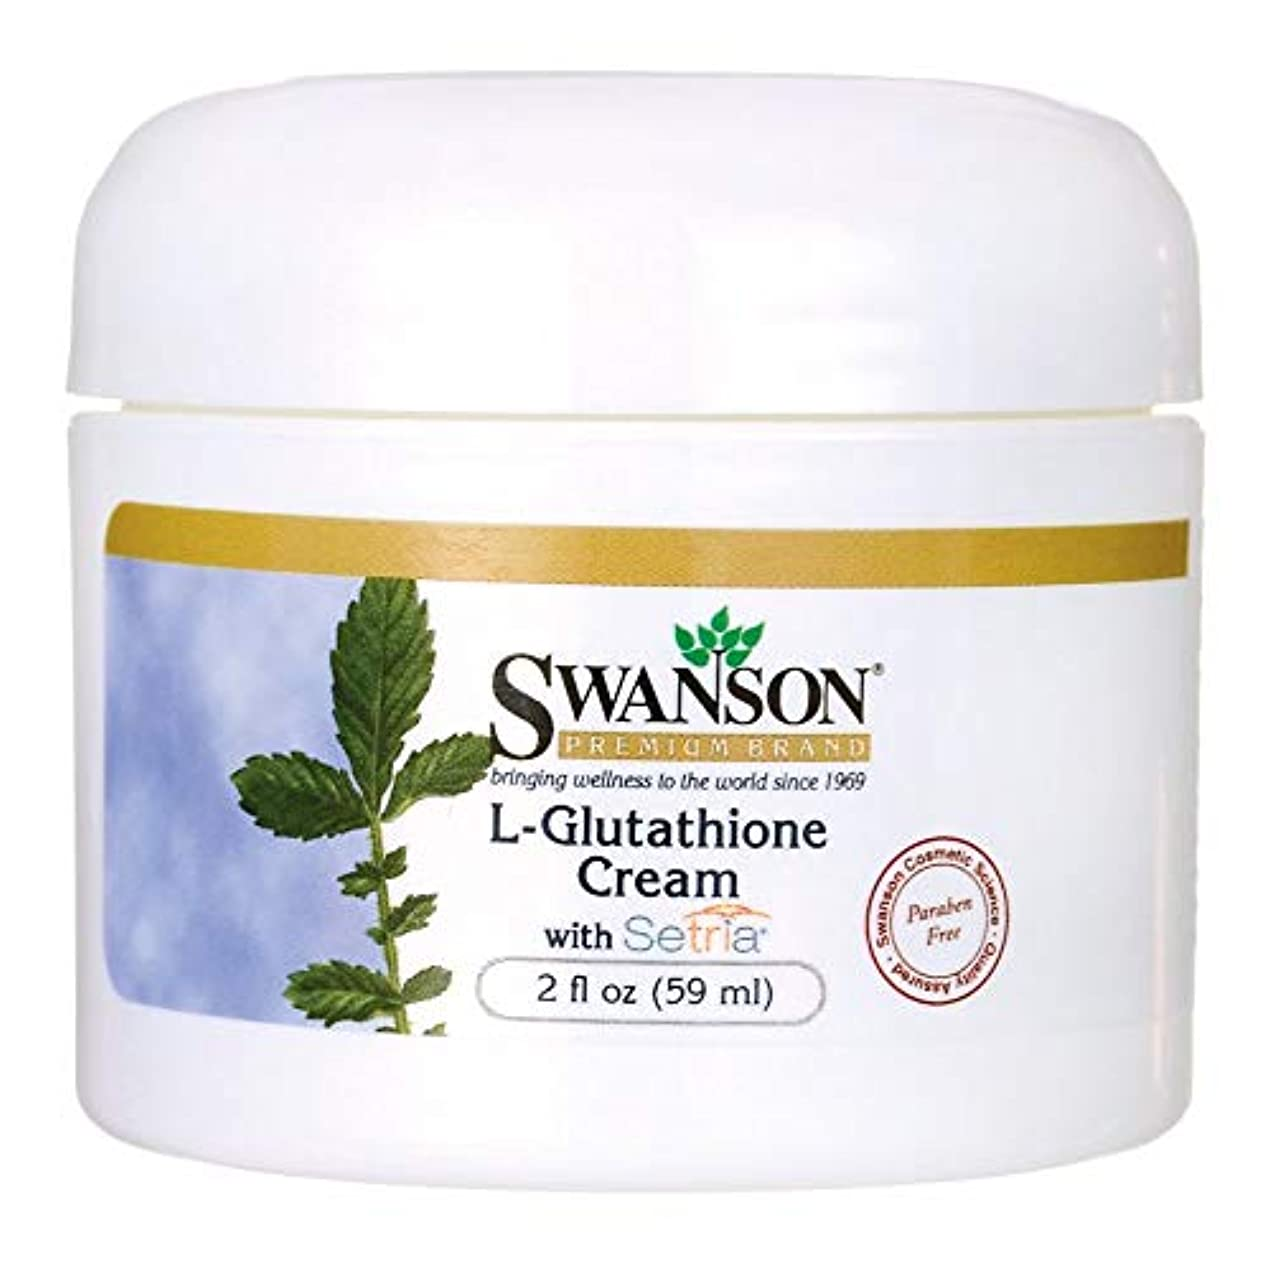 驚くべき生き物抽象化L-Glutathione Cream with Setria 2 fl oz (59 ml) Cream by Swanson Premium [並行輸入品]